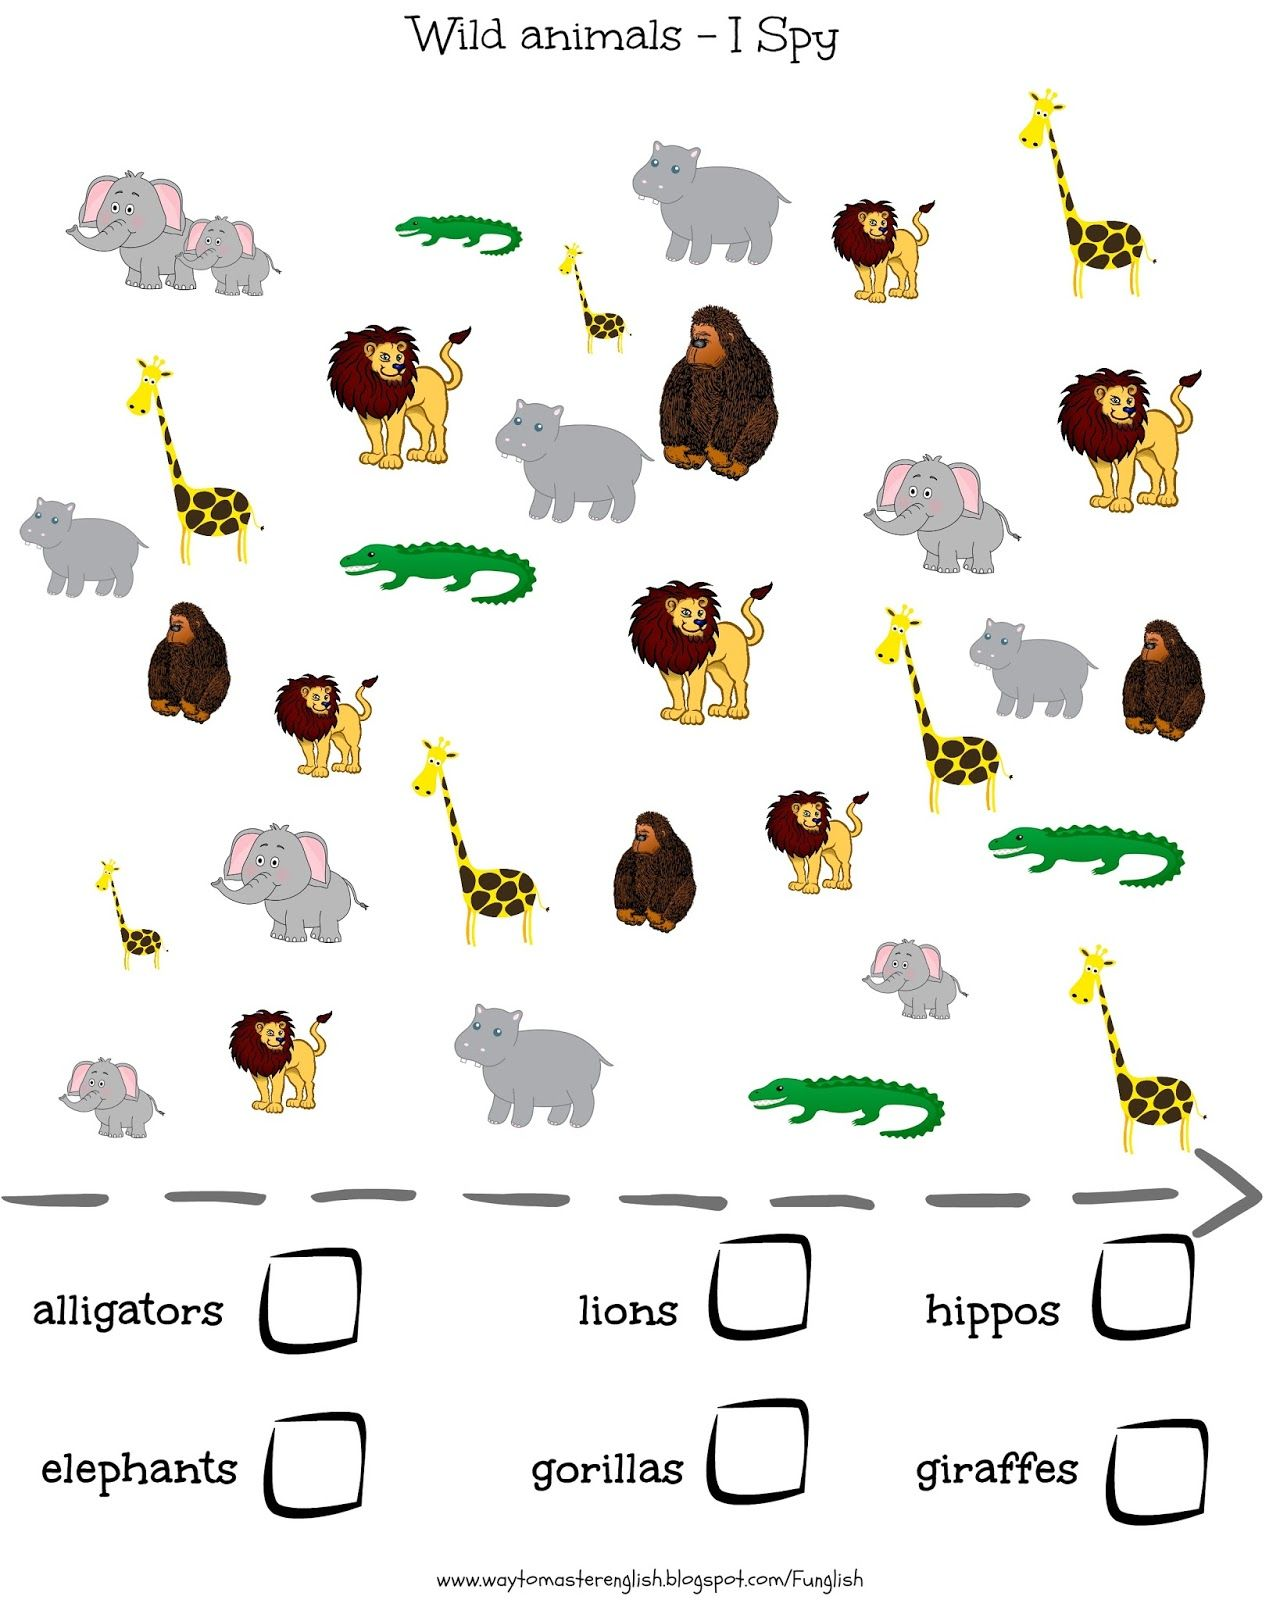 Worksheets I Spy Worksheets wild animals vocabulary i spy kids young learners learners